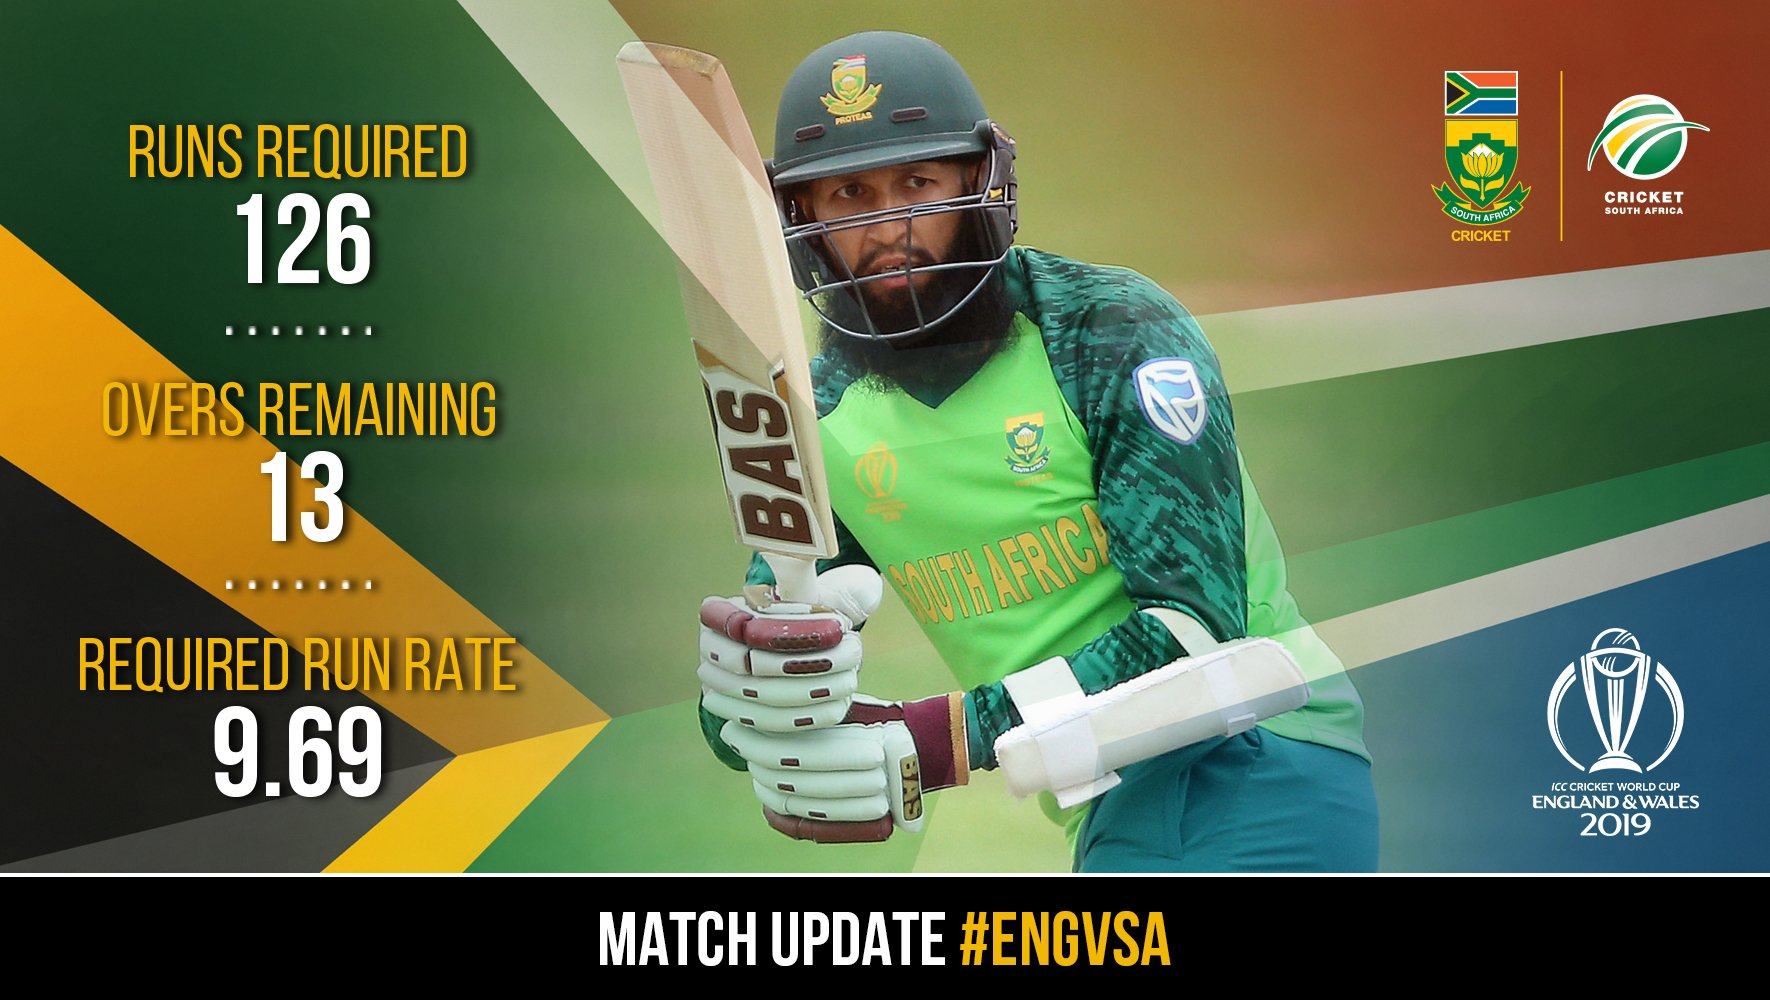 Cricket South Africa on Twitter: